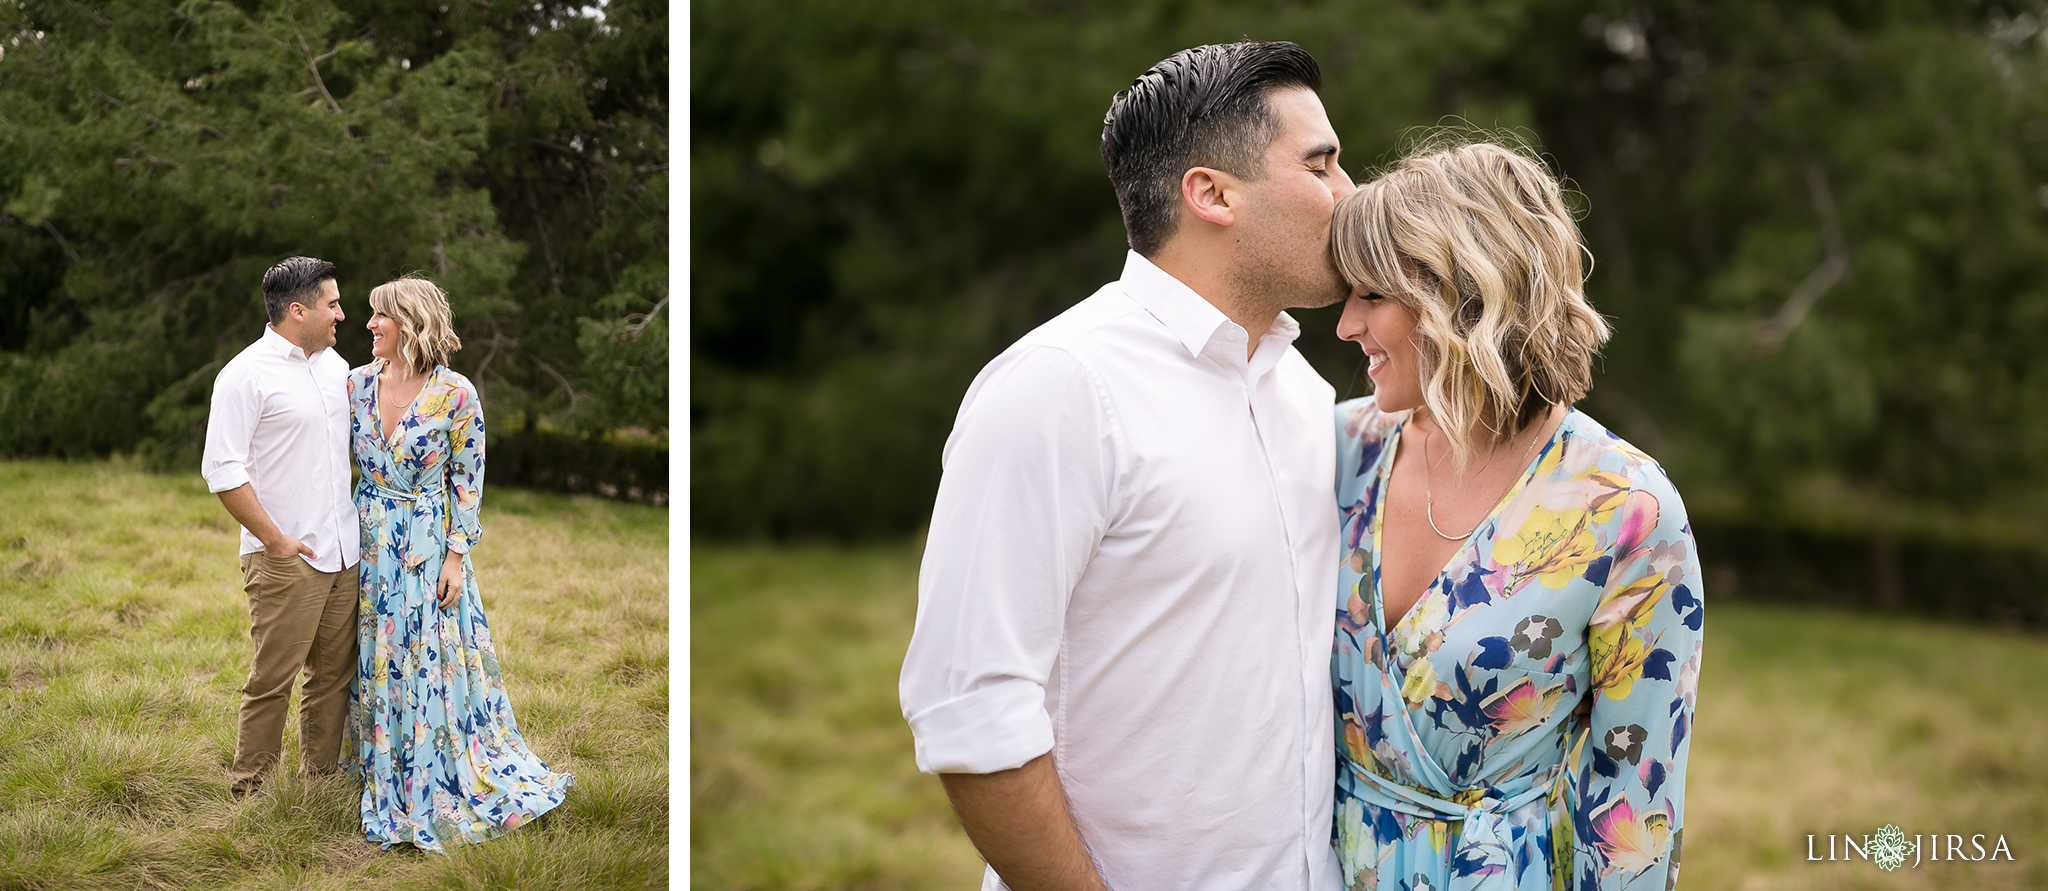 01-jeffrey-open-space-orange-county-engagement-photography